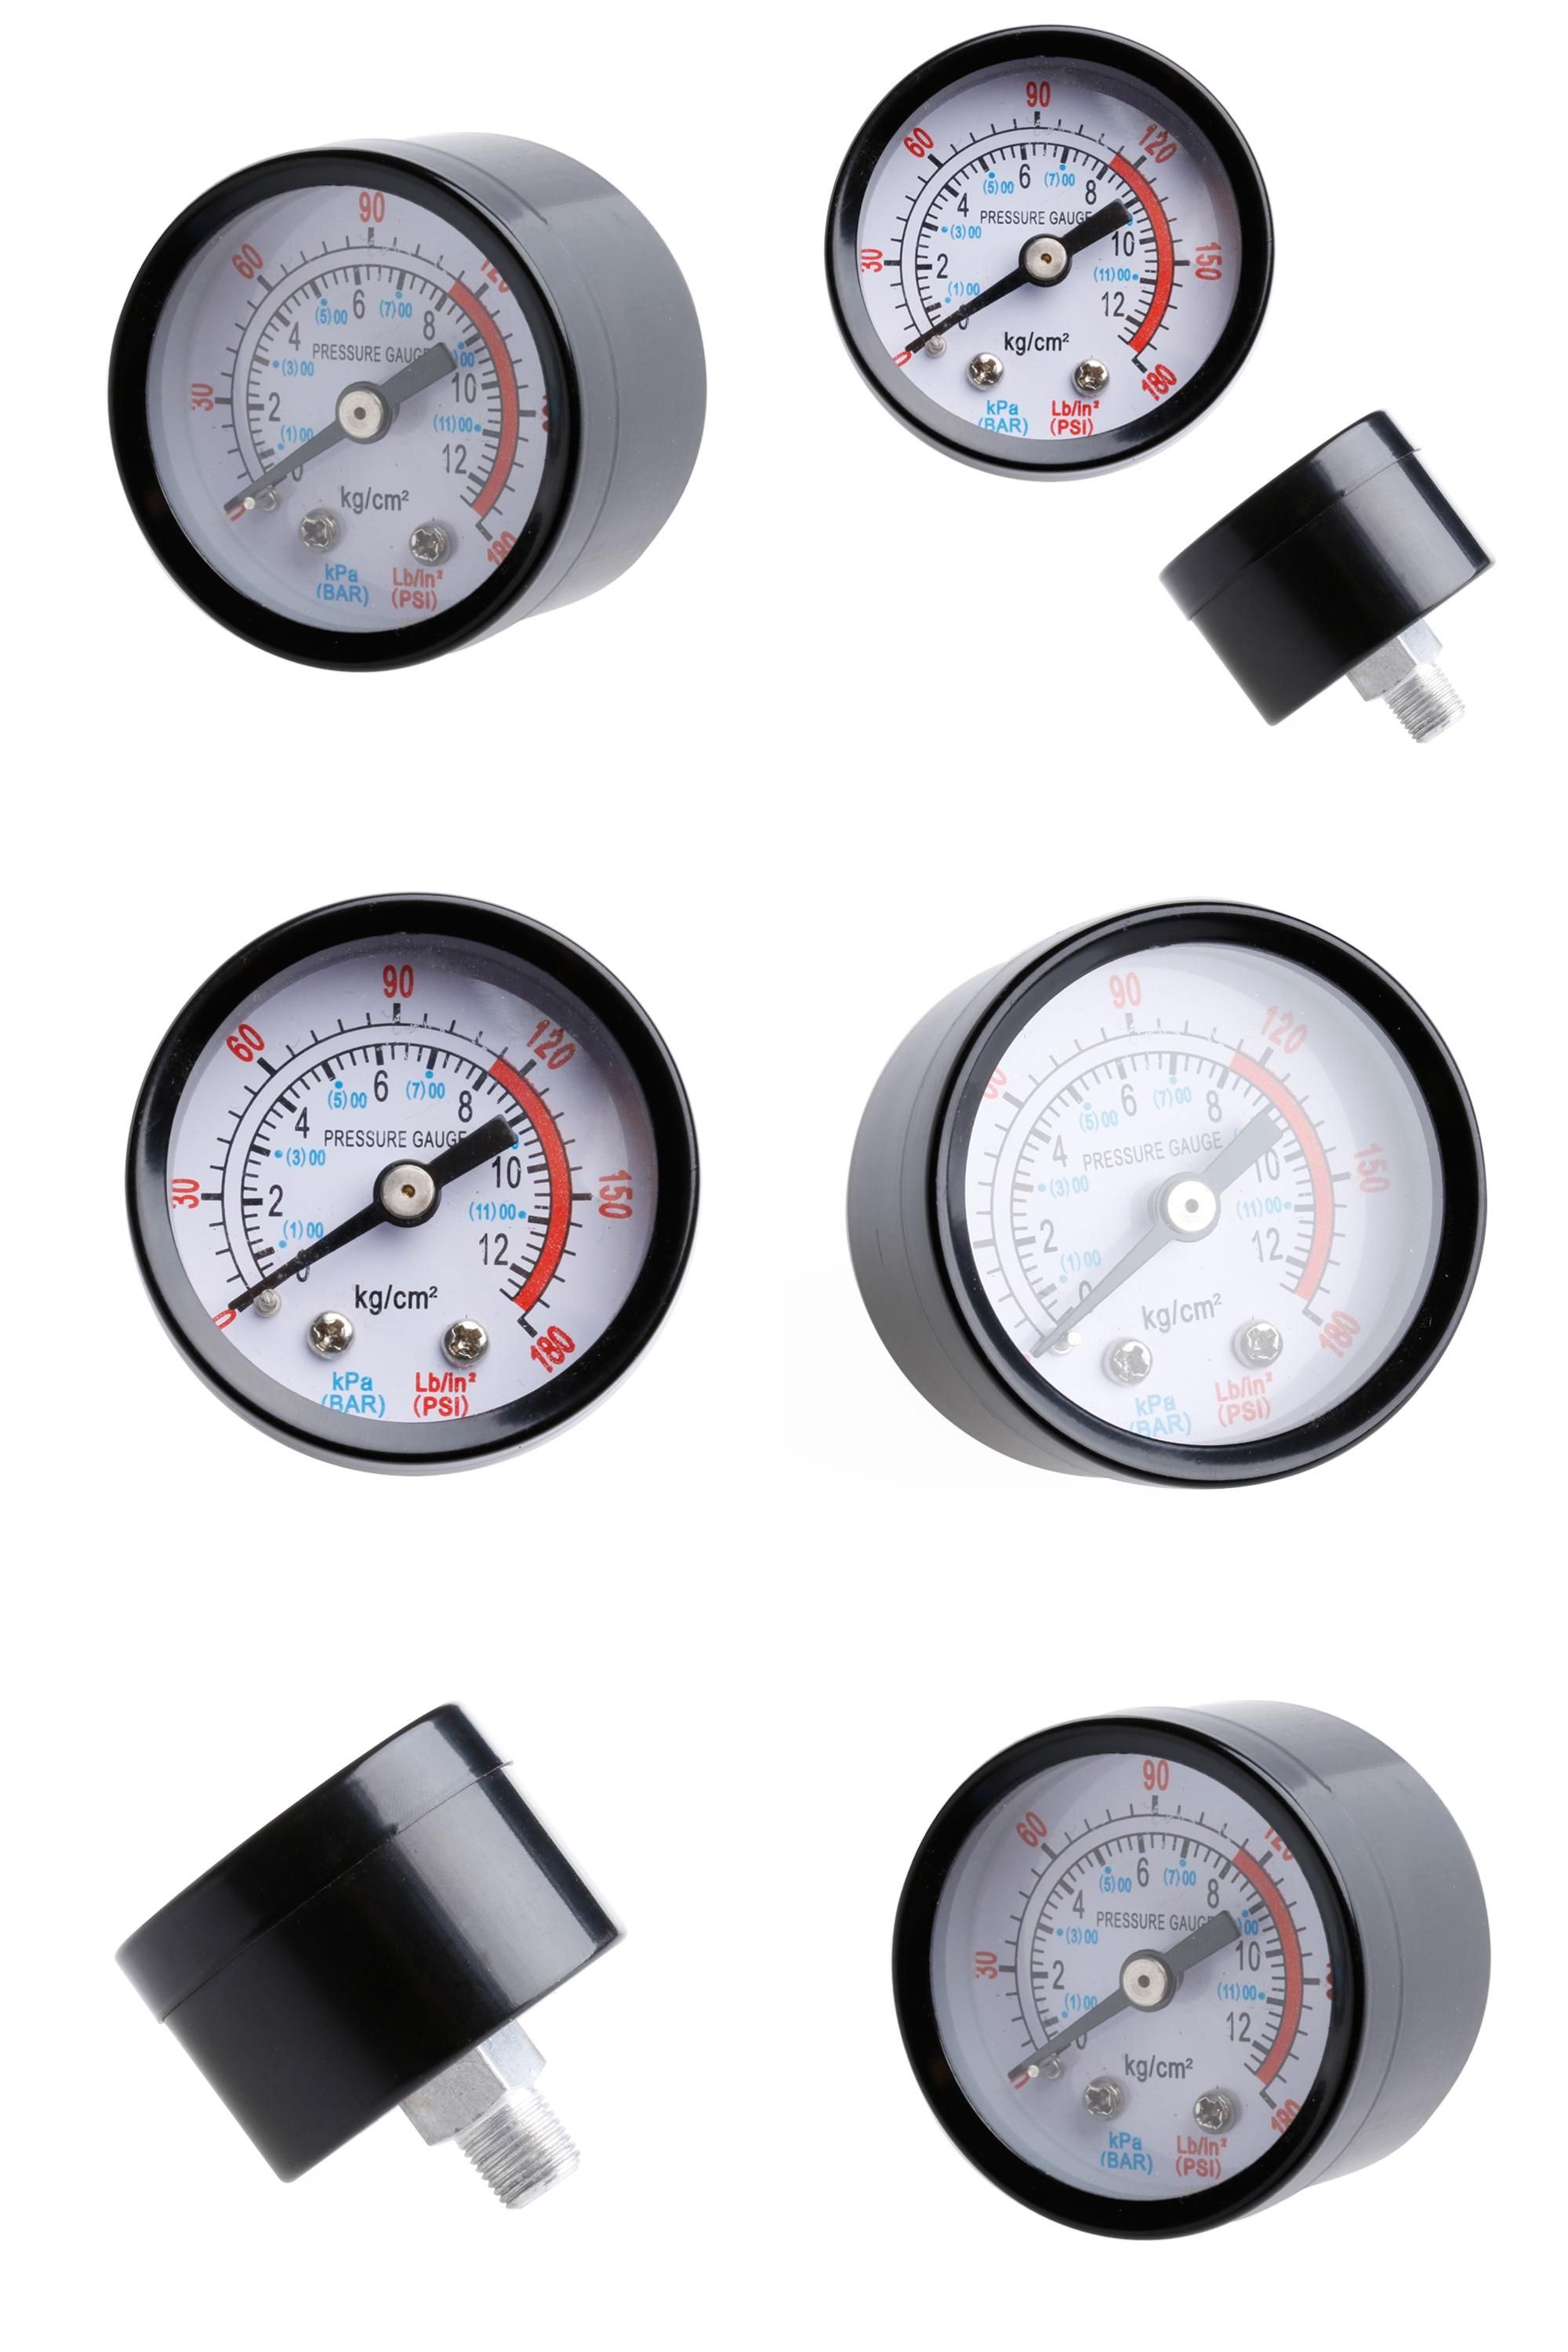 Visit To Buy Air Compressor Pneumatic Hydraulic Fluid Pressure Gauge 0 12bar 0 180psi New Advertisement Hydraulic Fluid Pressure Gauge Air Compressor